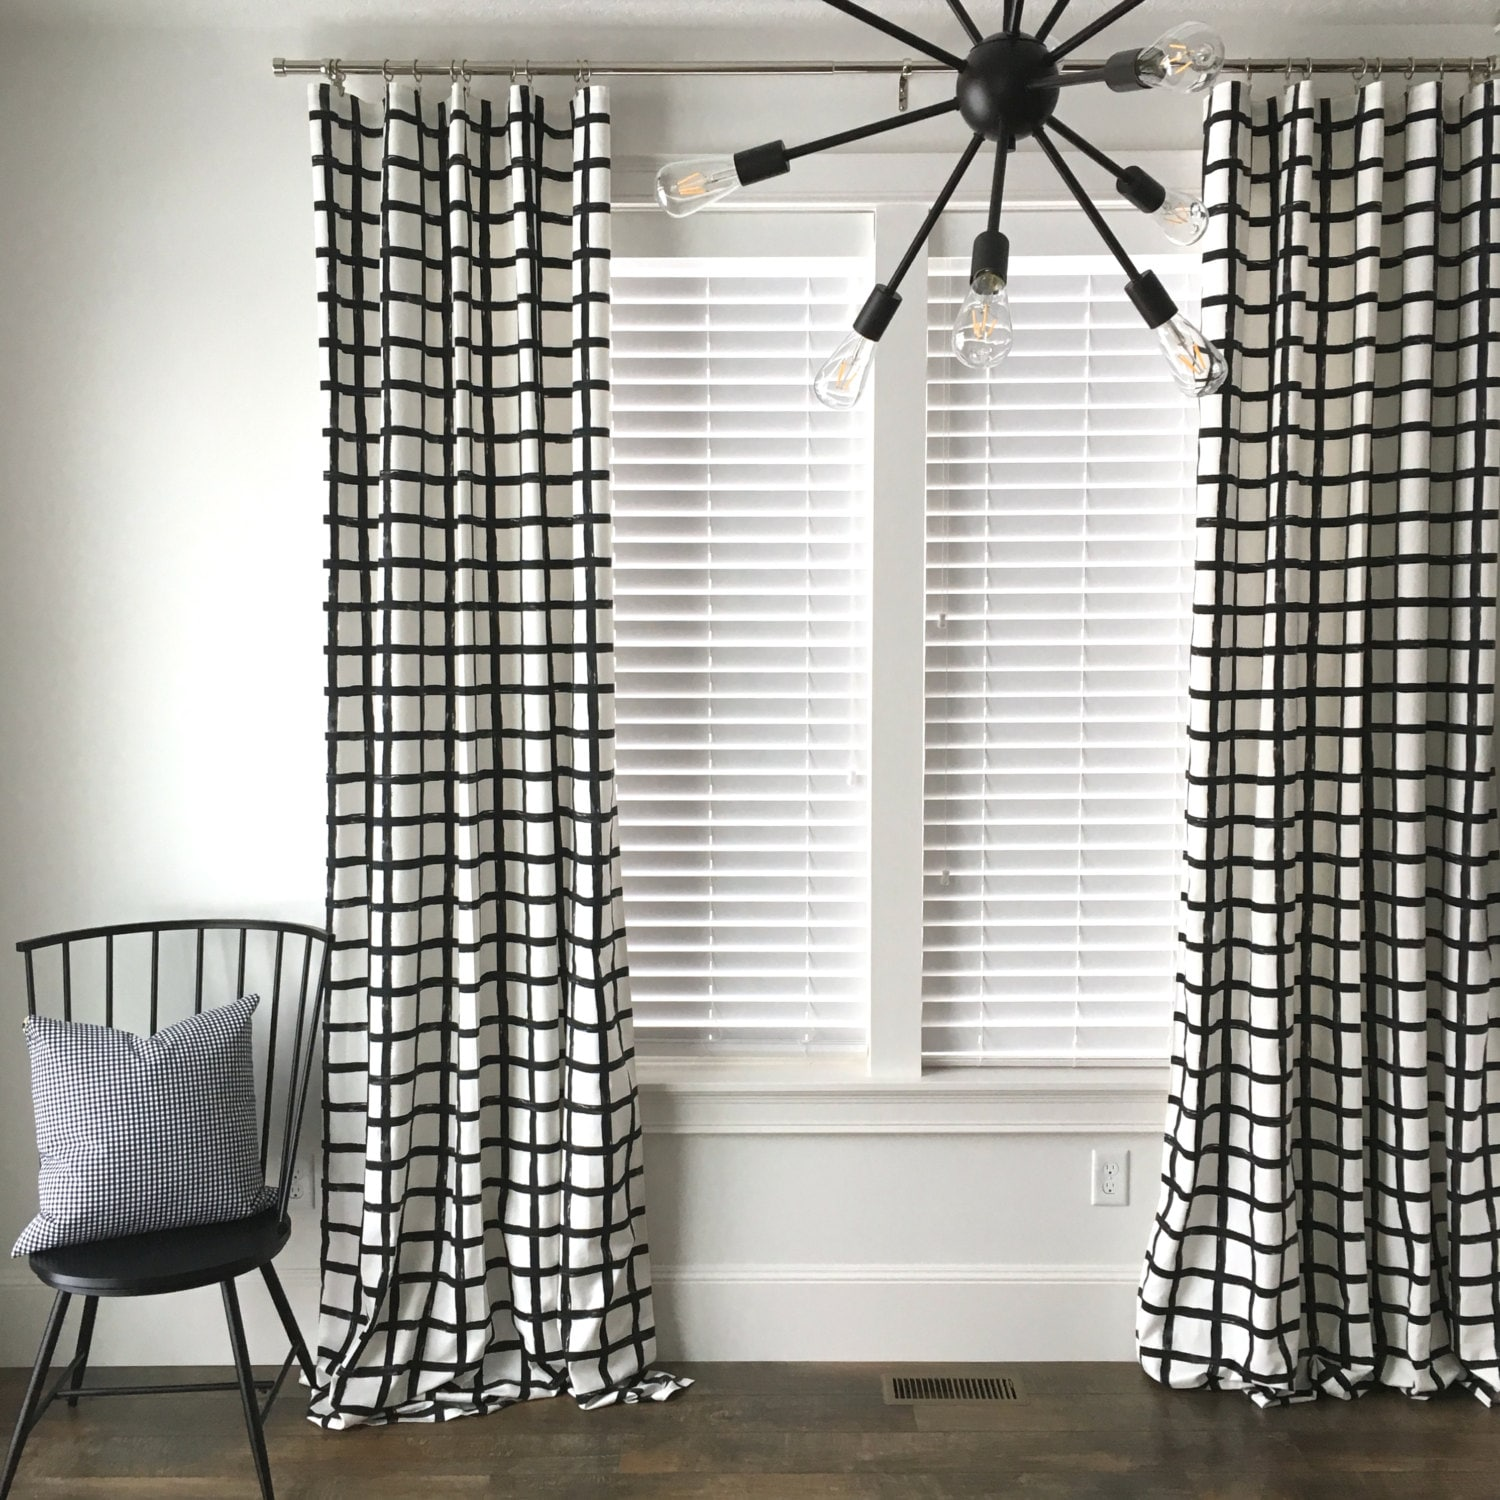 Windowpane Plaid Drapes Black And White Check Window Treatment Mid Century Curtains Covering